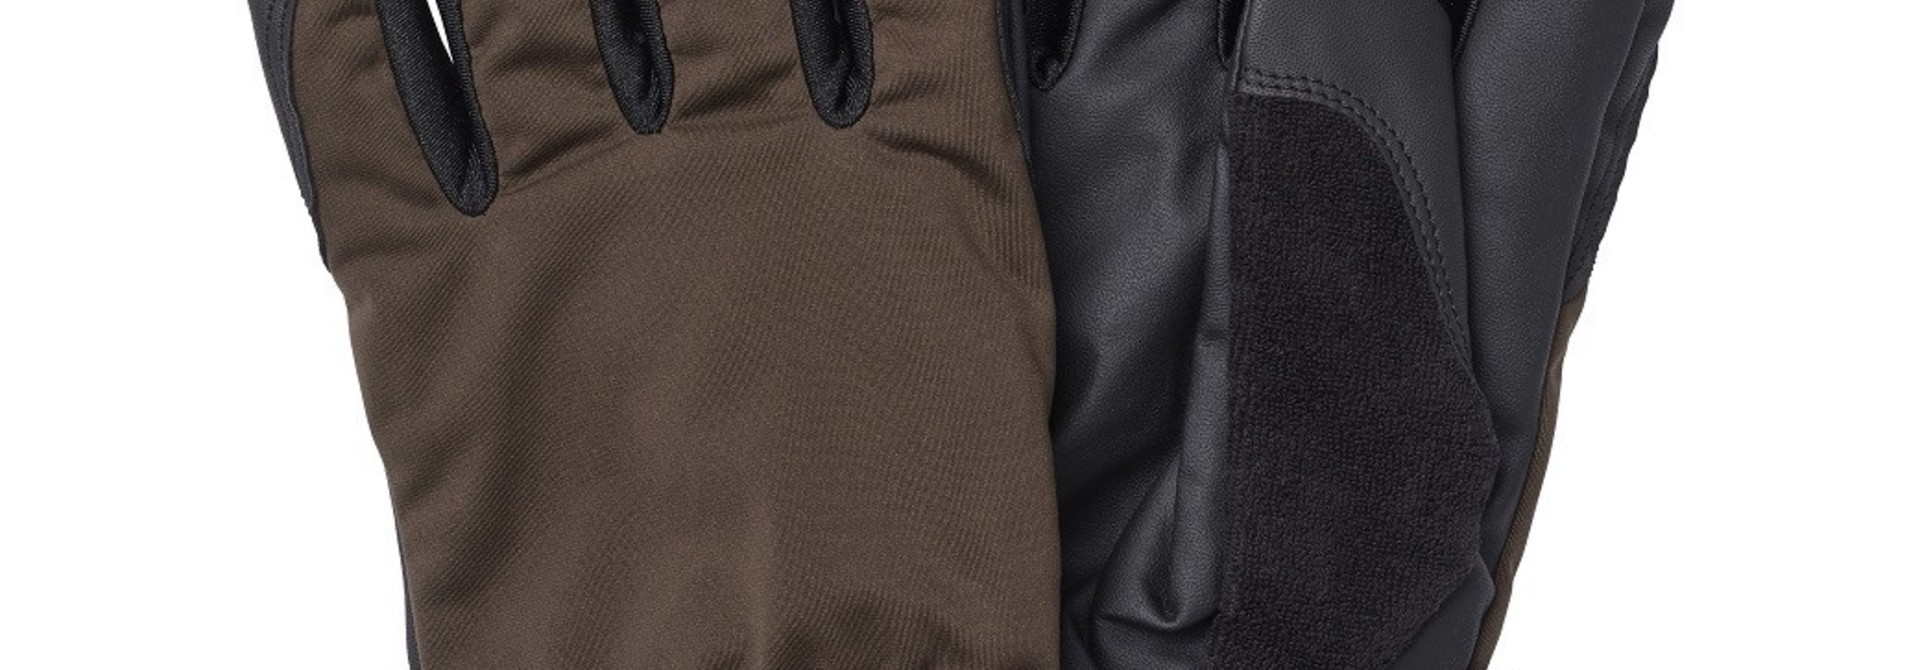 Chevalier Shooting Glove WB Brown